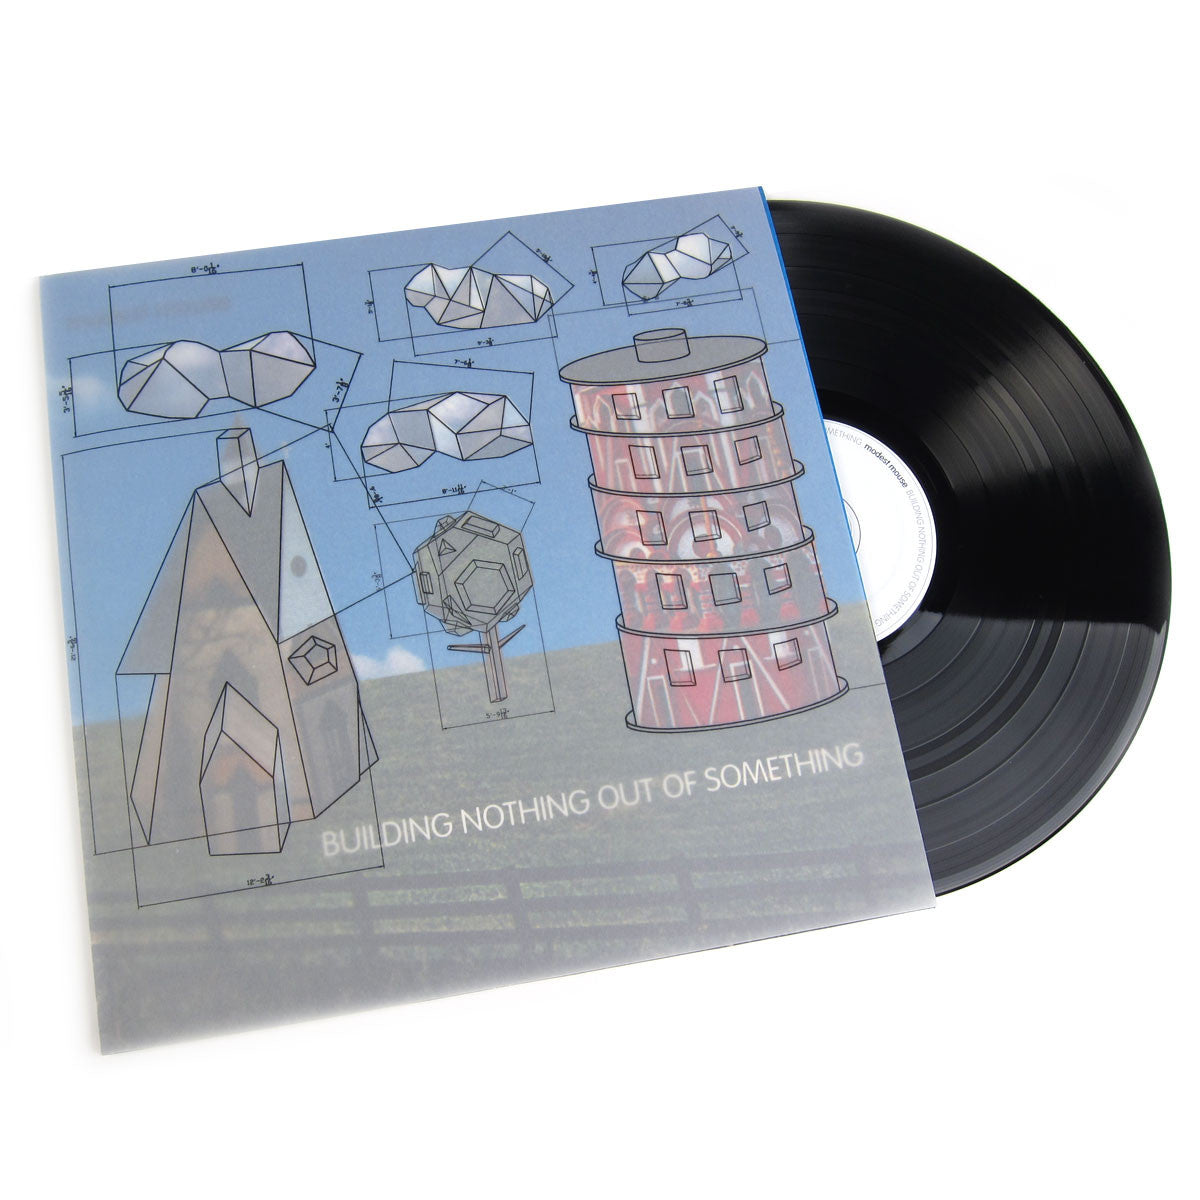 Modest Mouse: Building Nothing Out Of Something (180g) Vinyl LP